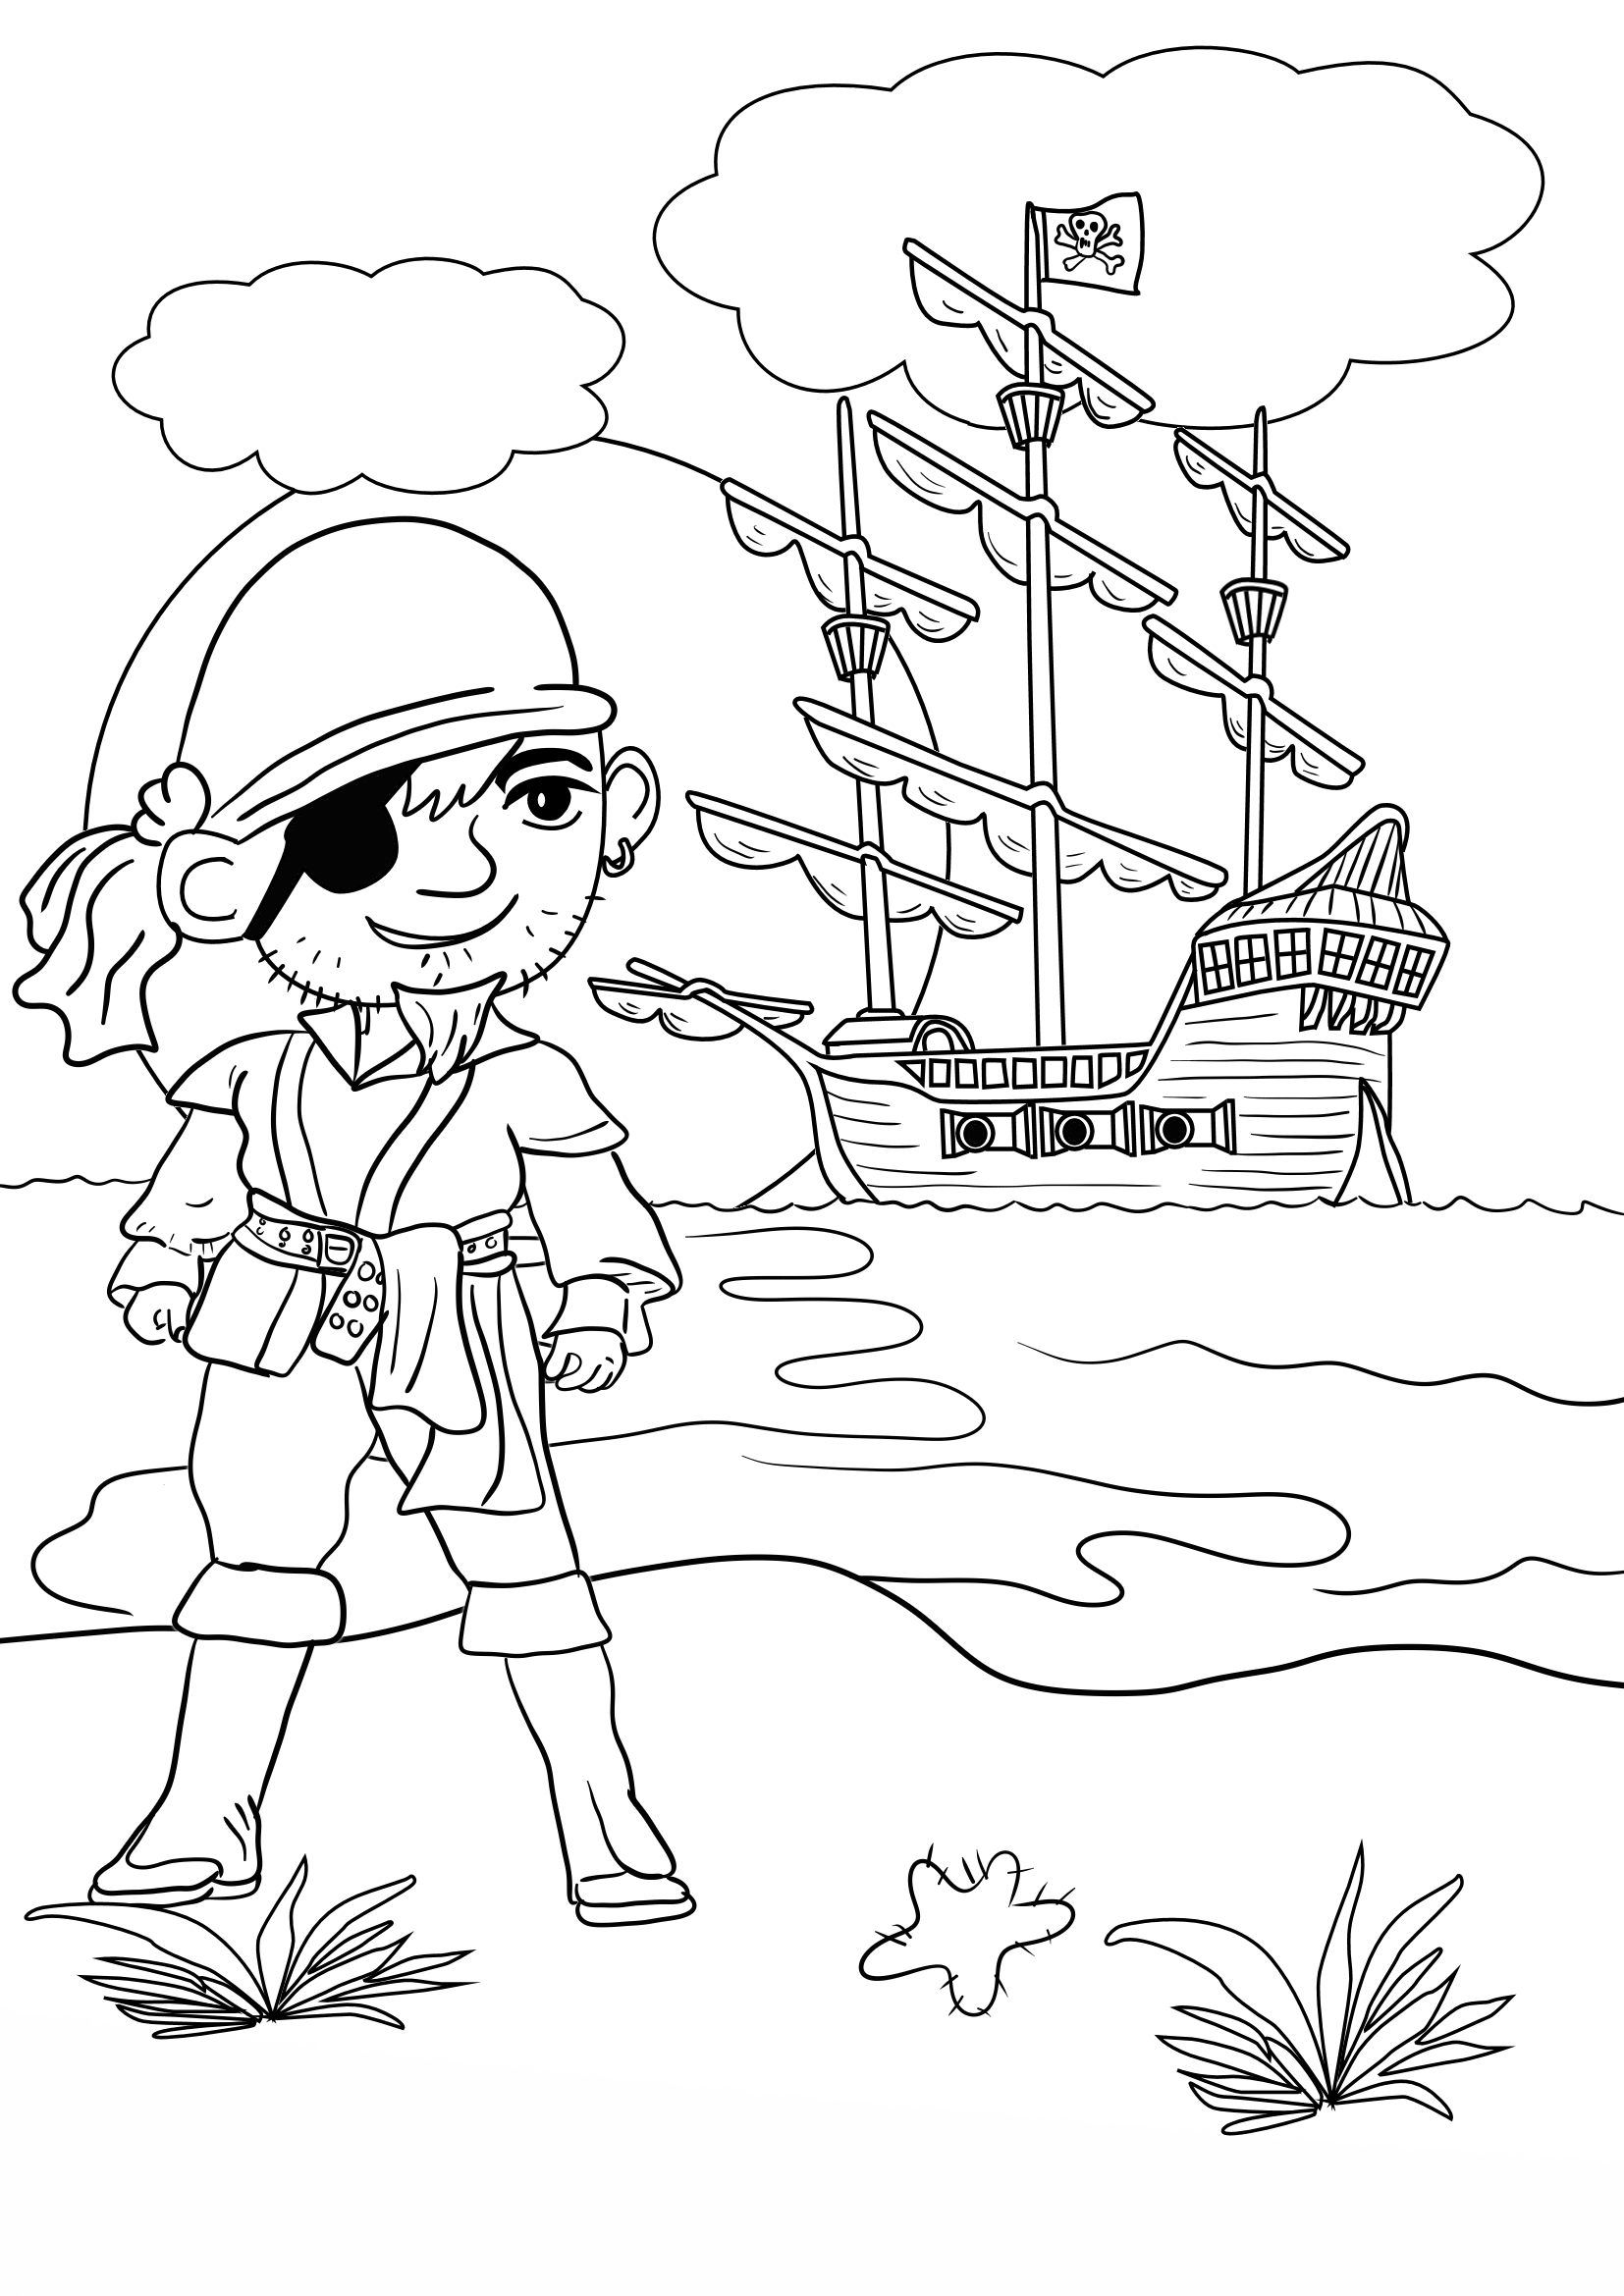 pirate coloring pirates coloring pages learn to coloring pirate coloring